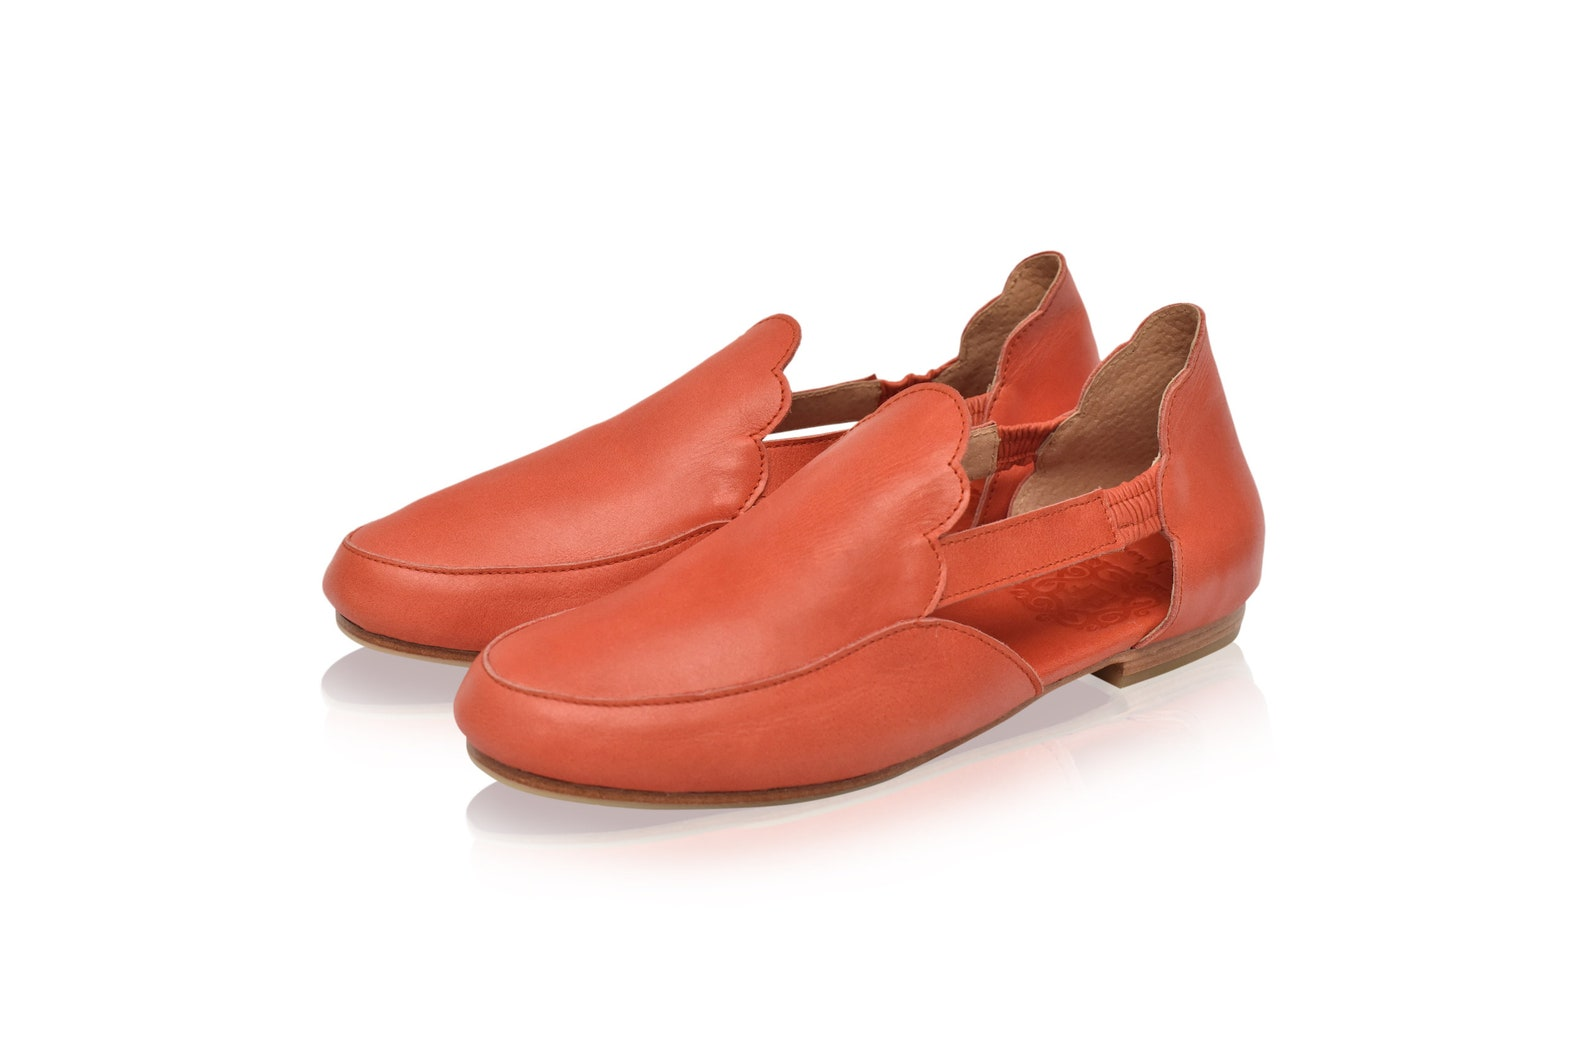 amalfi. red leather flats / red leather ballet flats / red leather shoes handmade / boho leather sandals / red leather sandals .